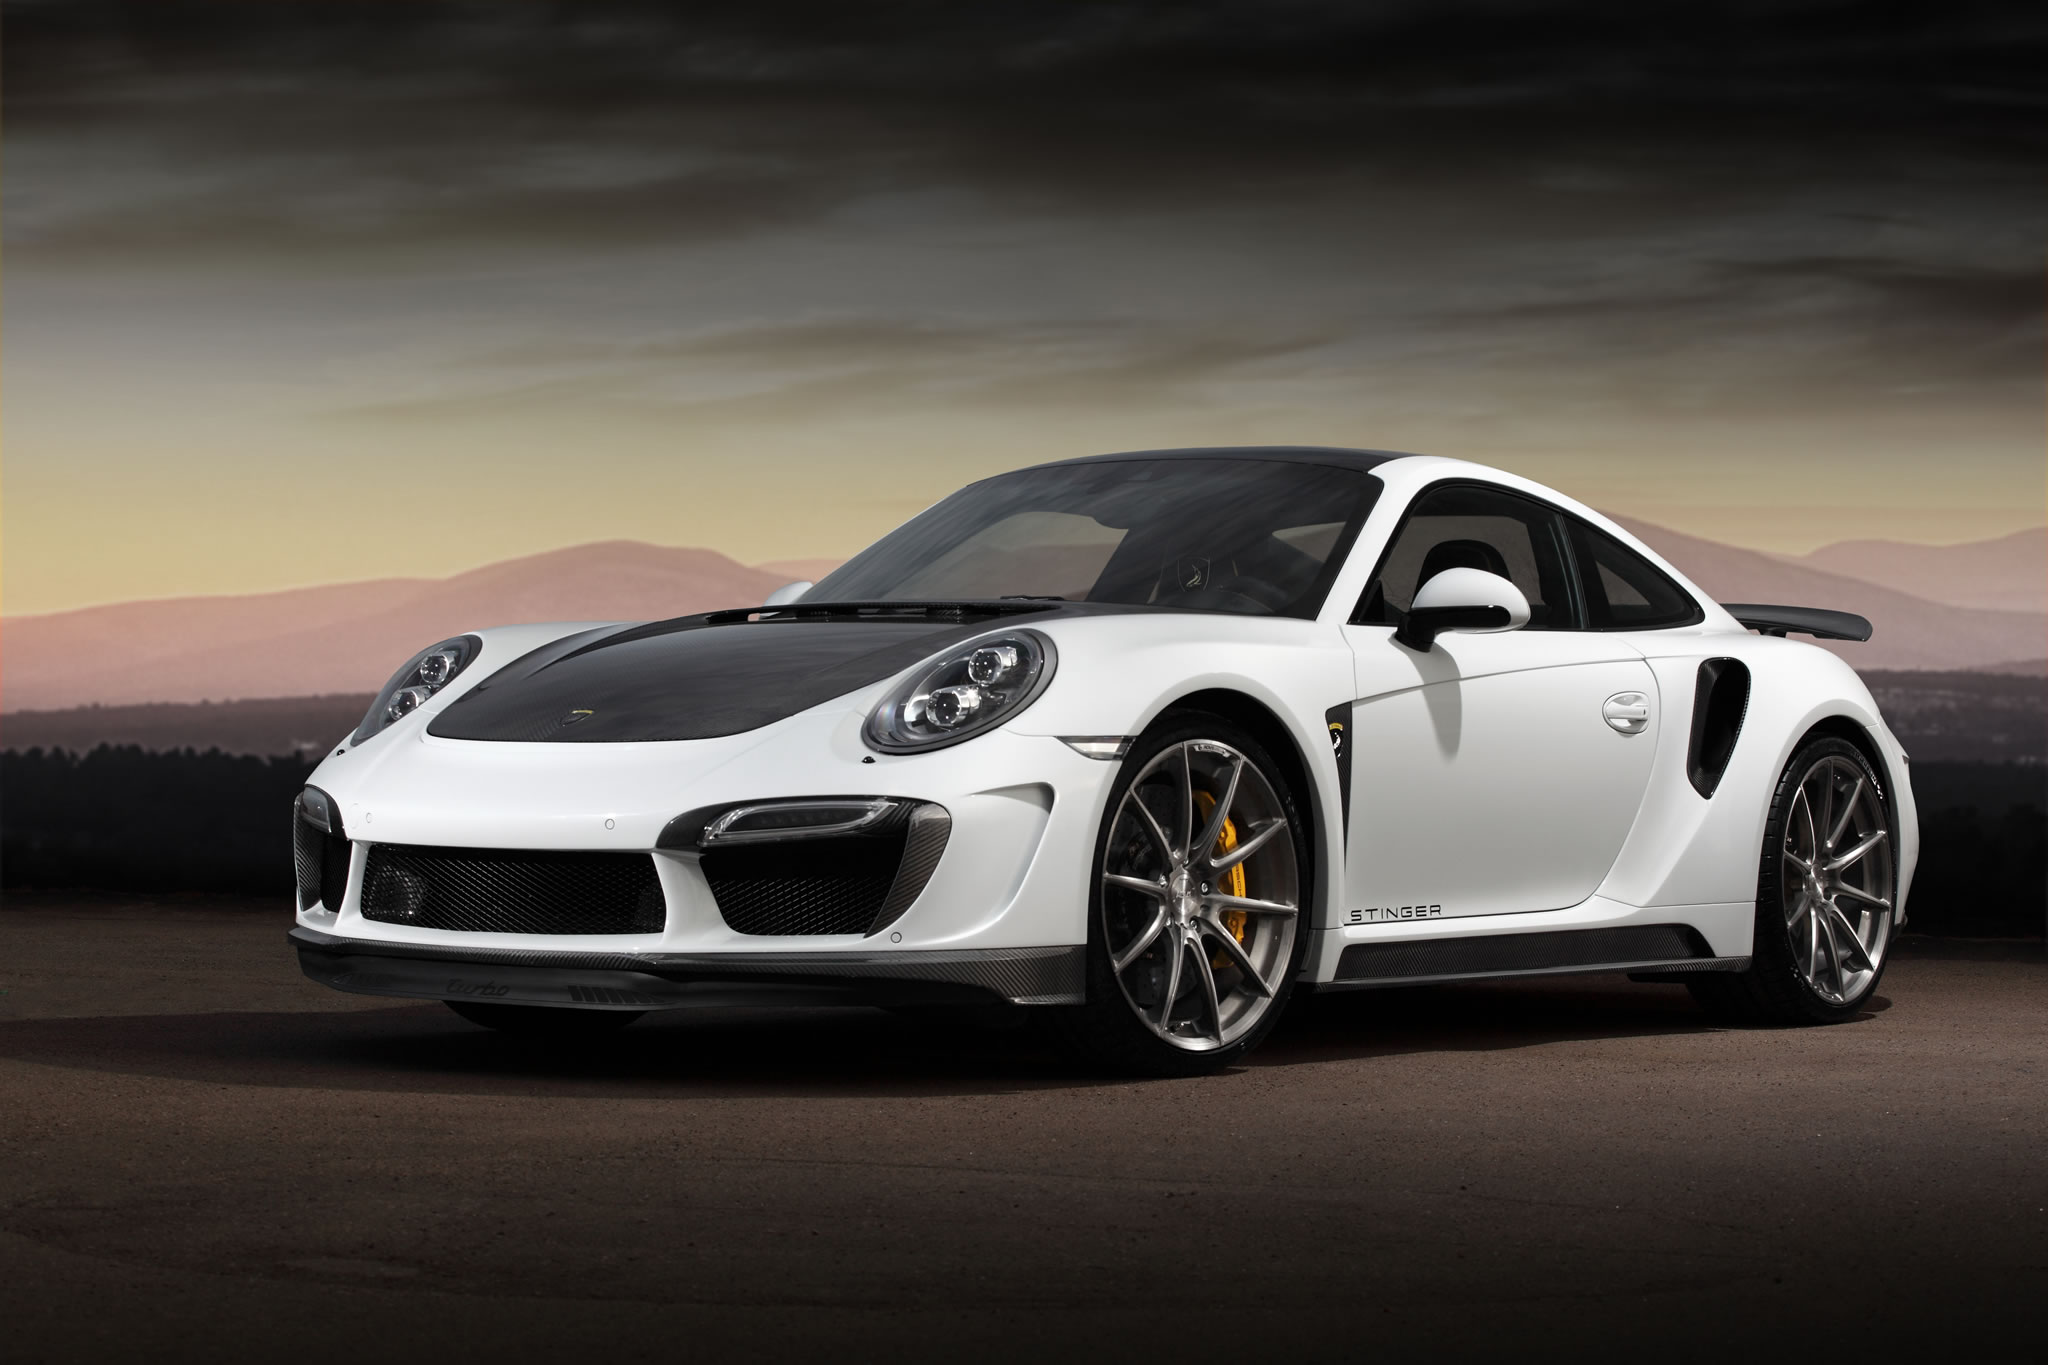 2015 porsche 911 turbo s stinger gtr by topcar front. Black Bedroom Furniture Sets. Home Design Ideas